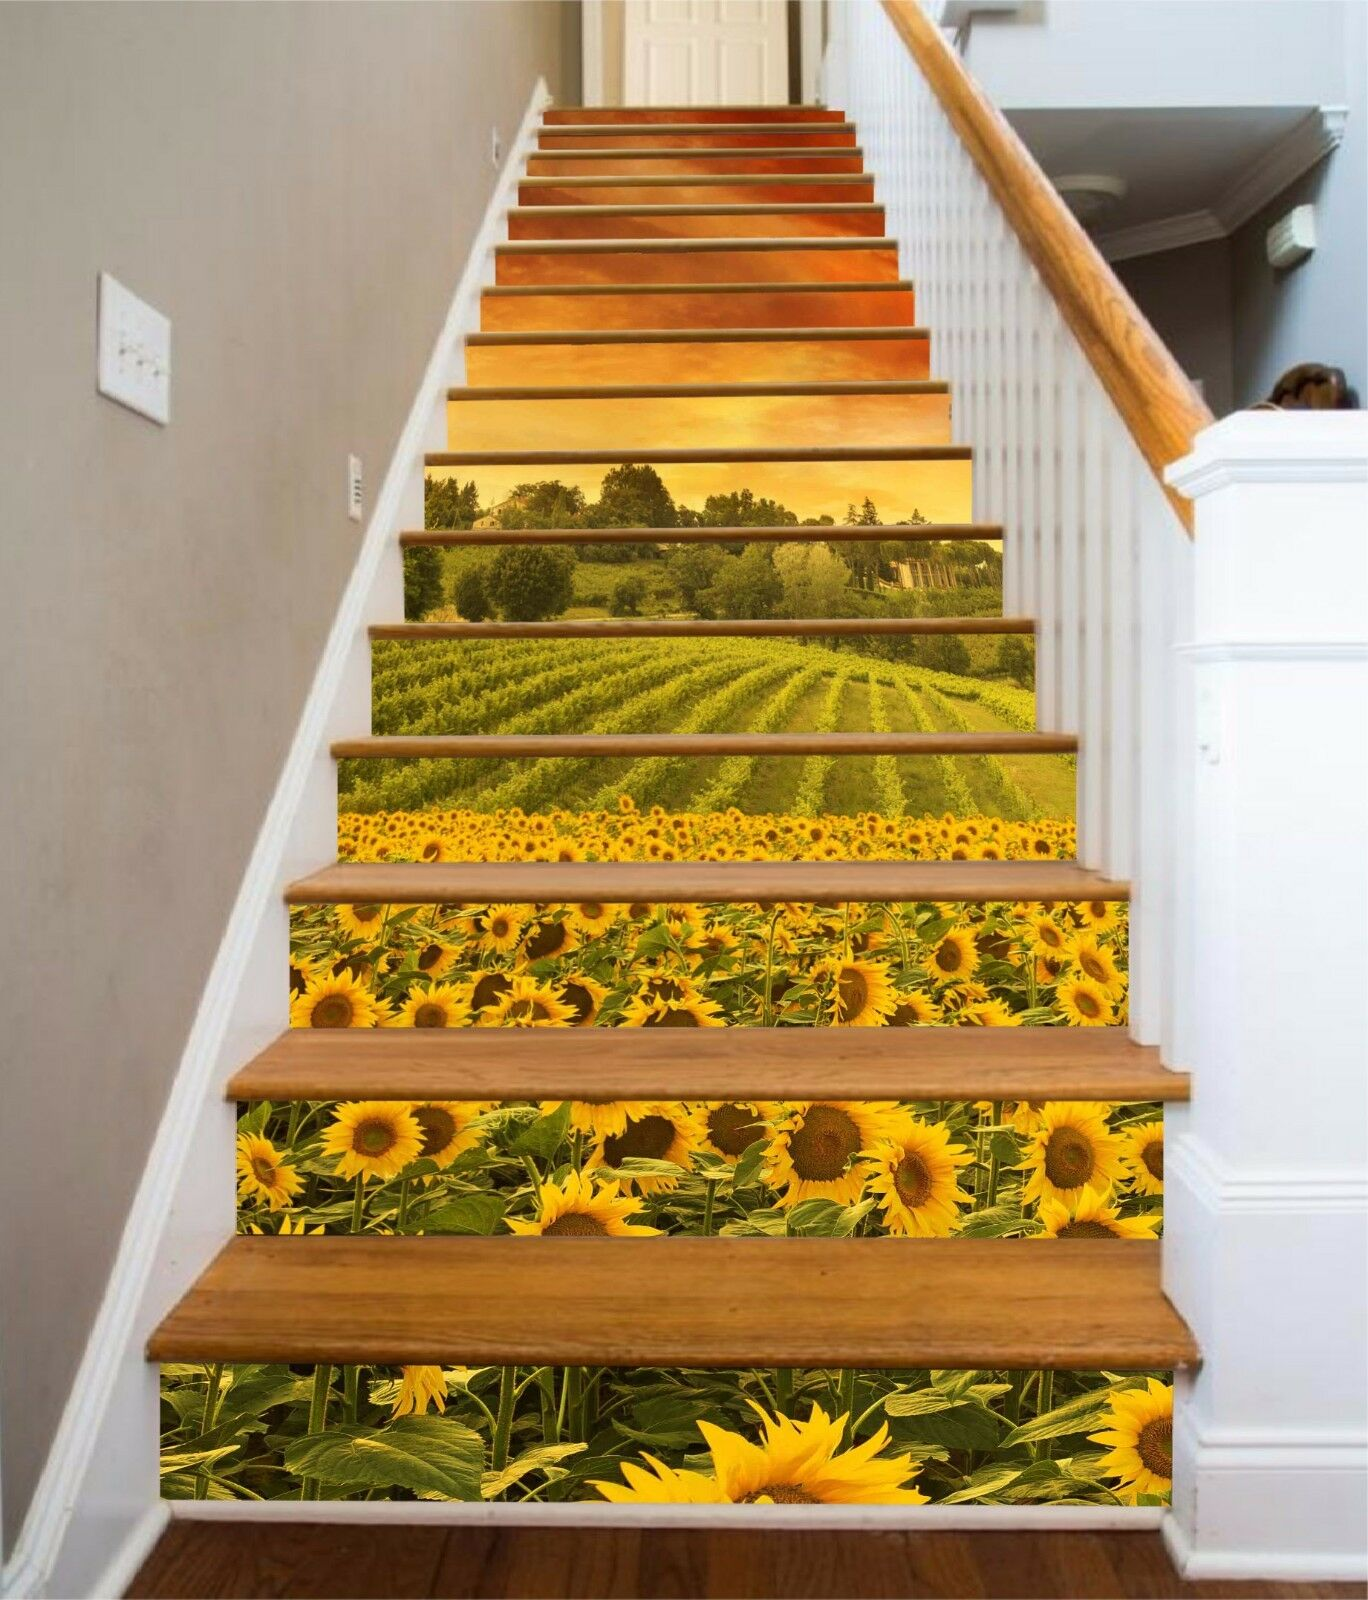 3D Sunflowers 021 Stair Risers Decoration Photo Mural Vinyl Decal Wallpaper AU